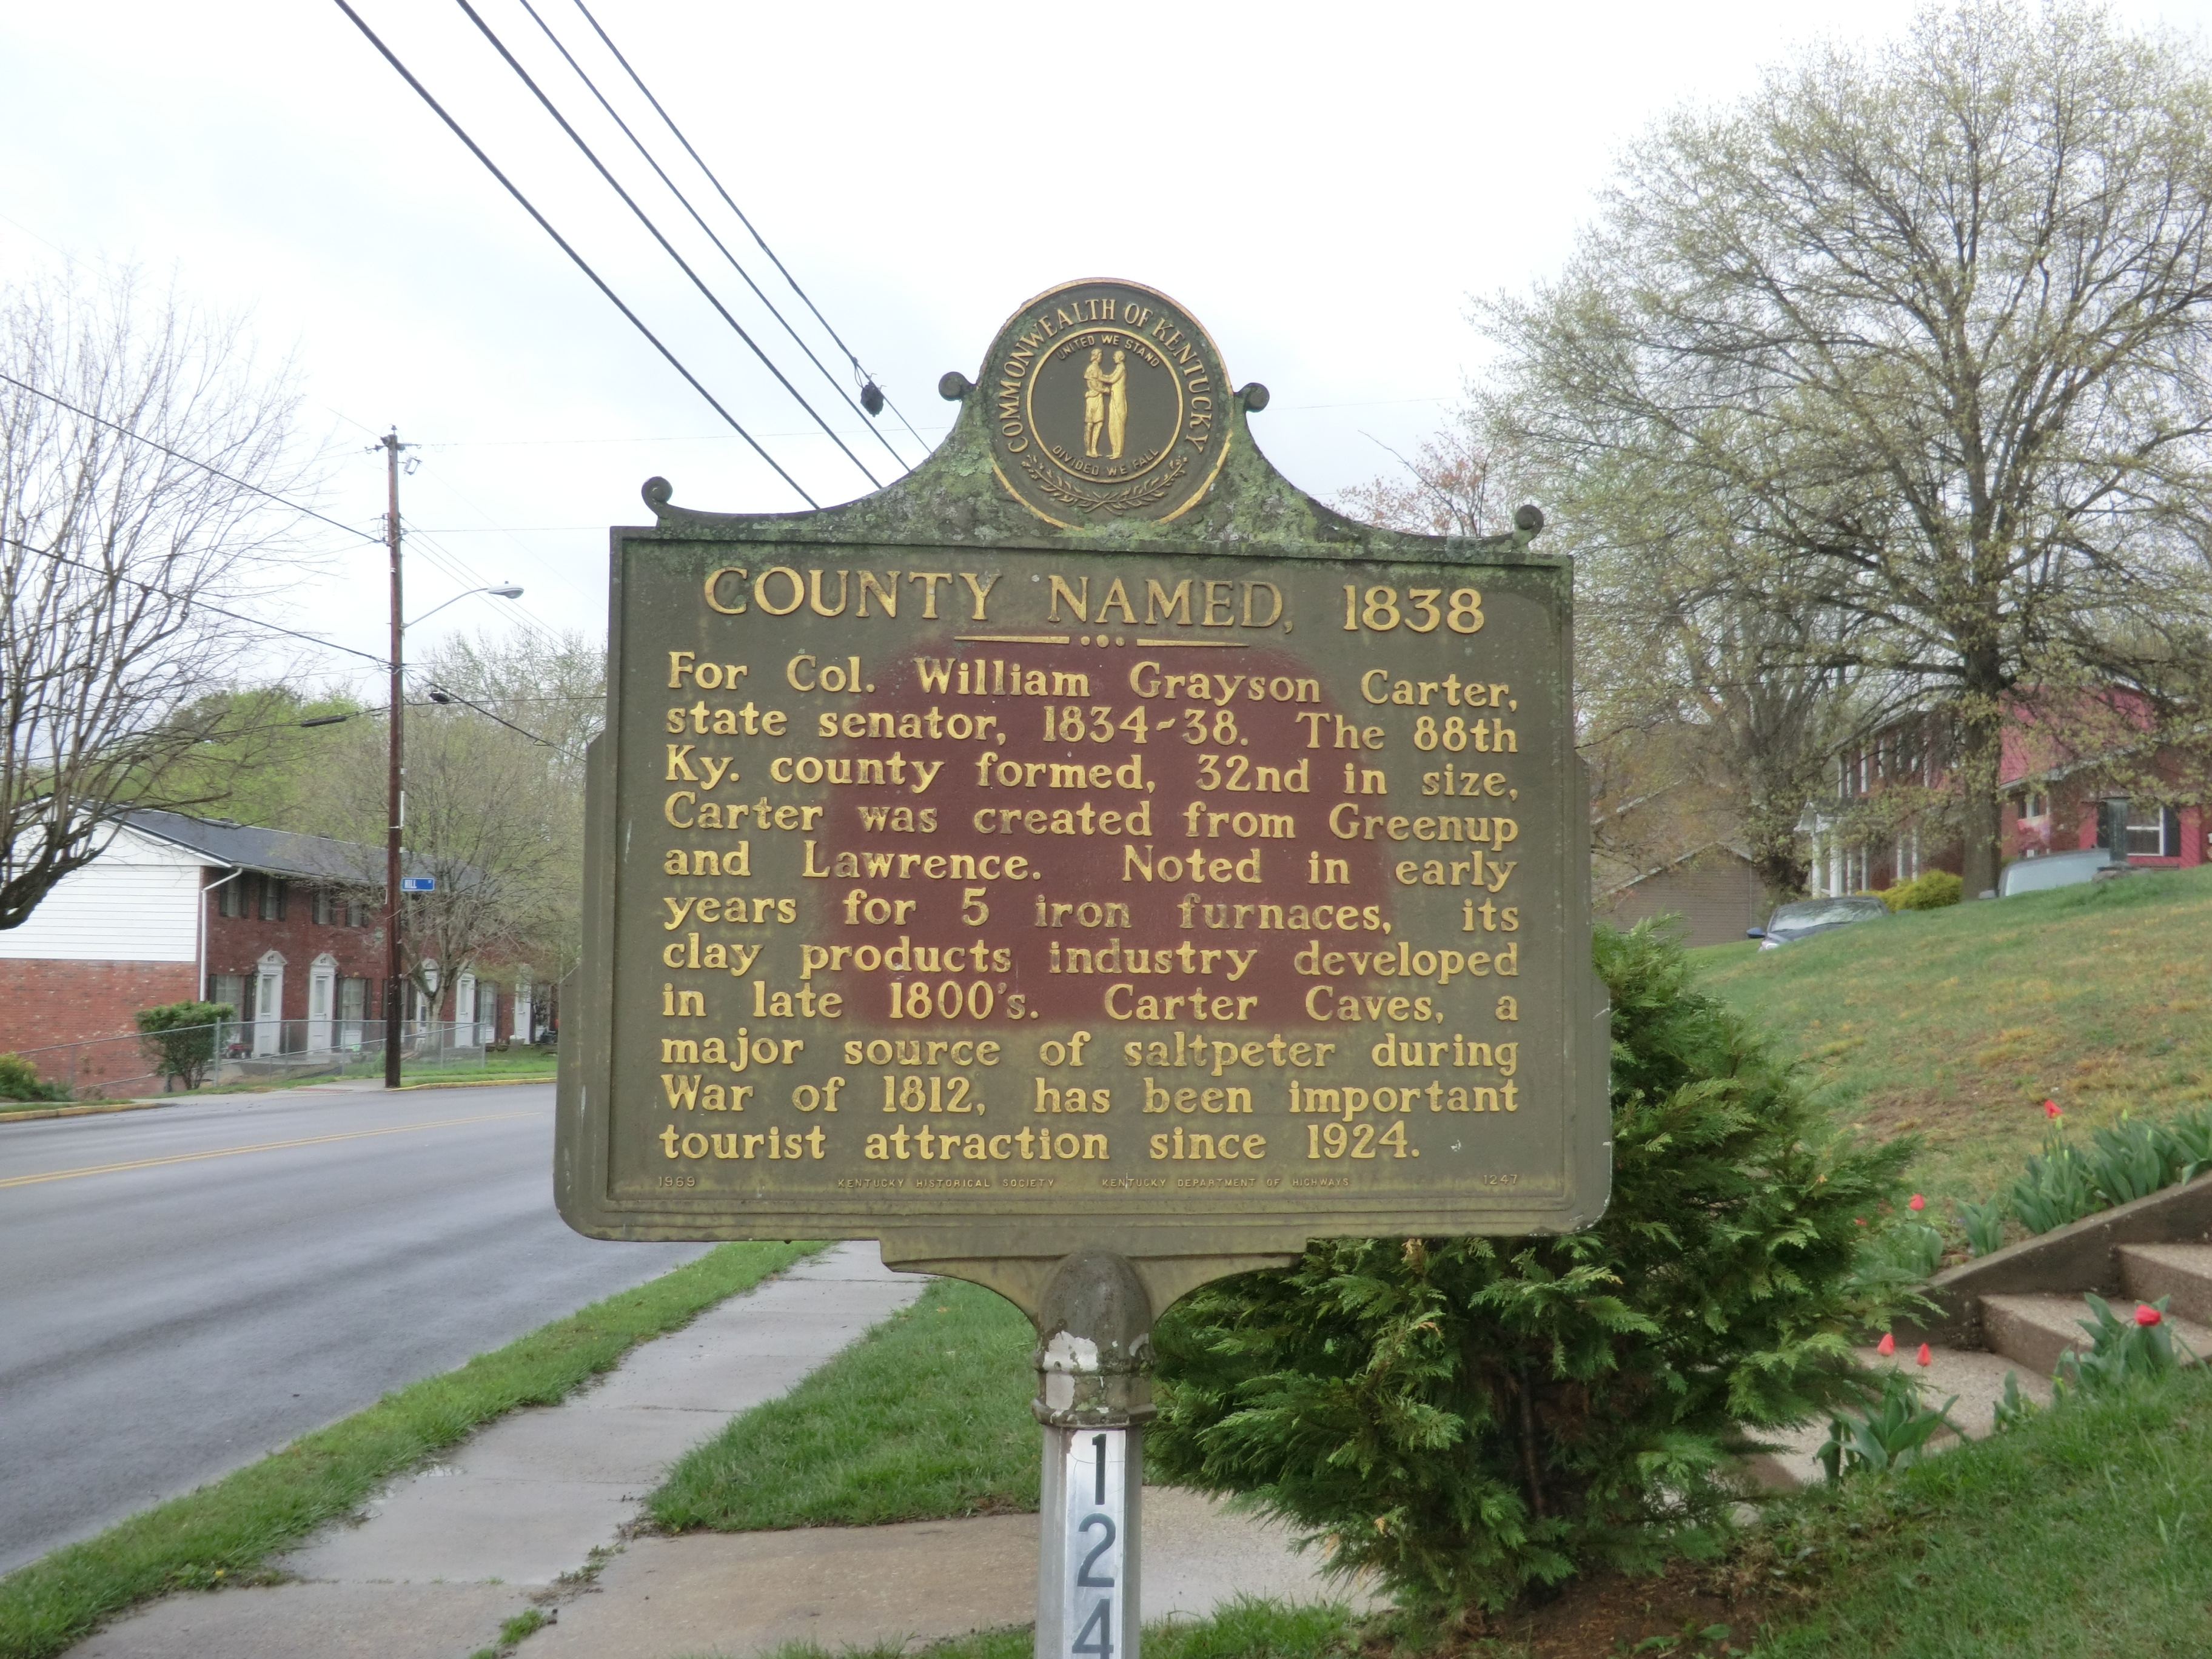 County Named, 1838 Marker